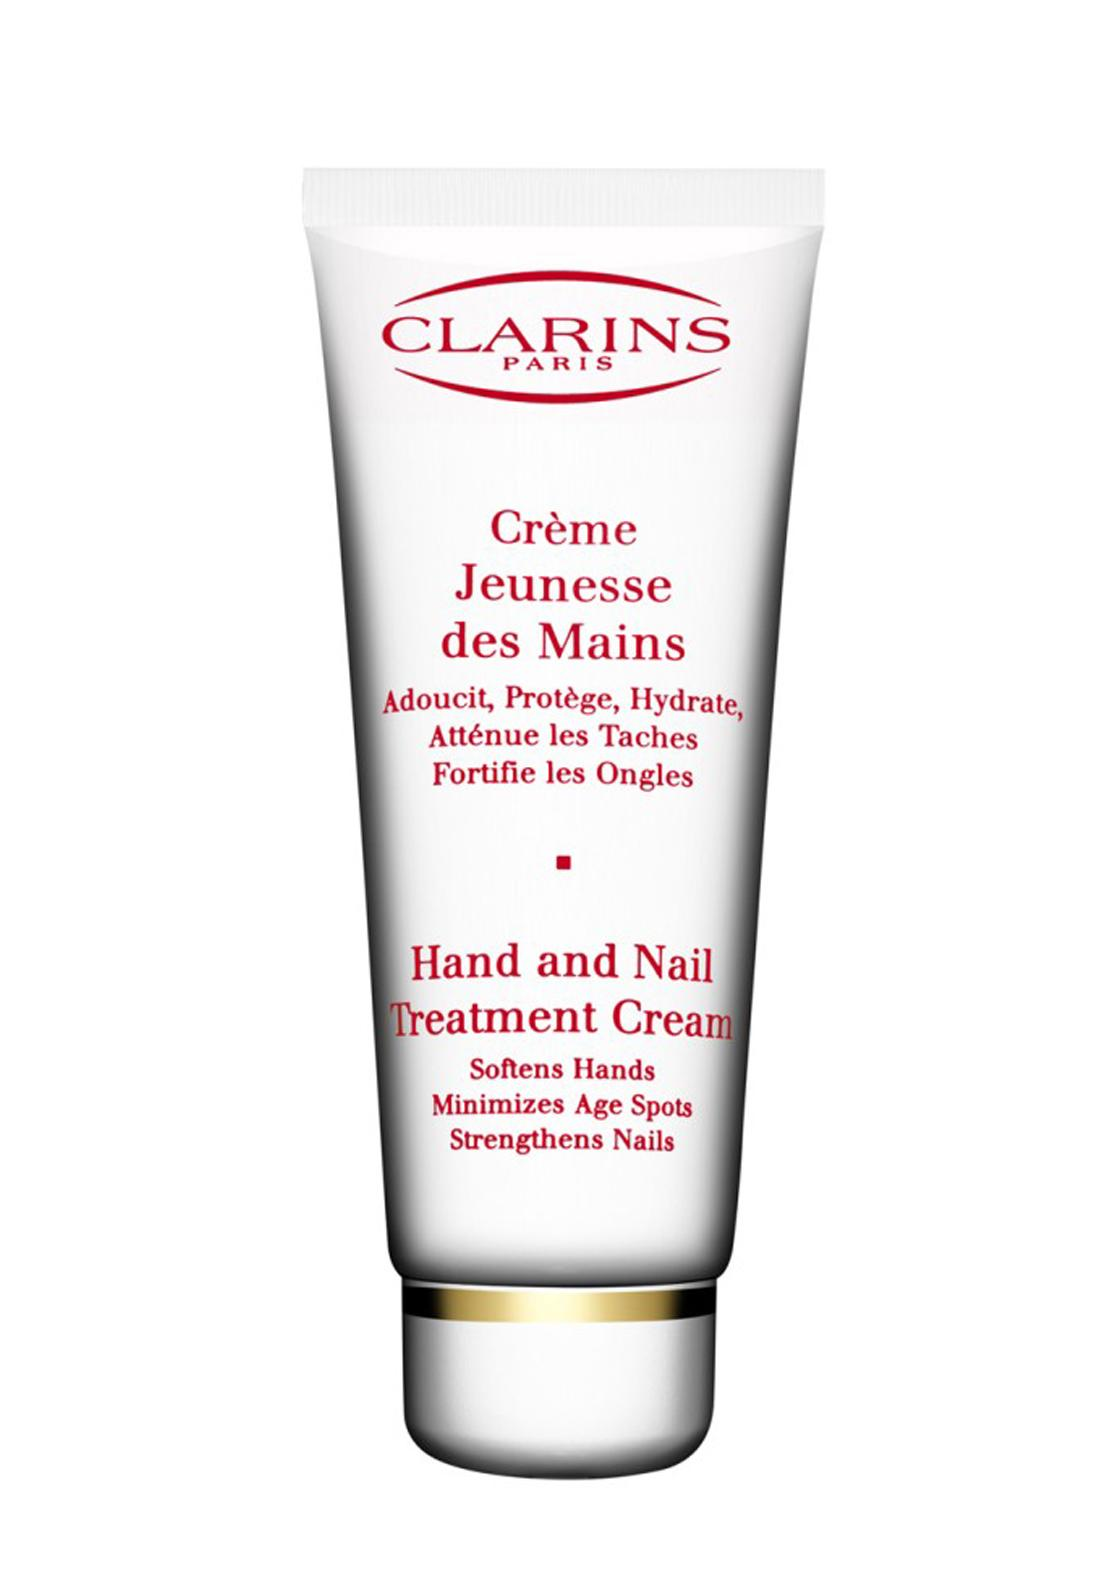 Clarins Hand and Nail Treatment Cream, 100ml